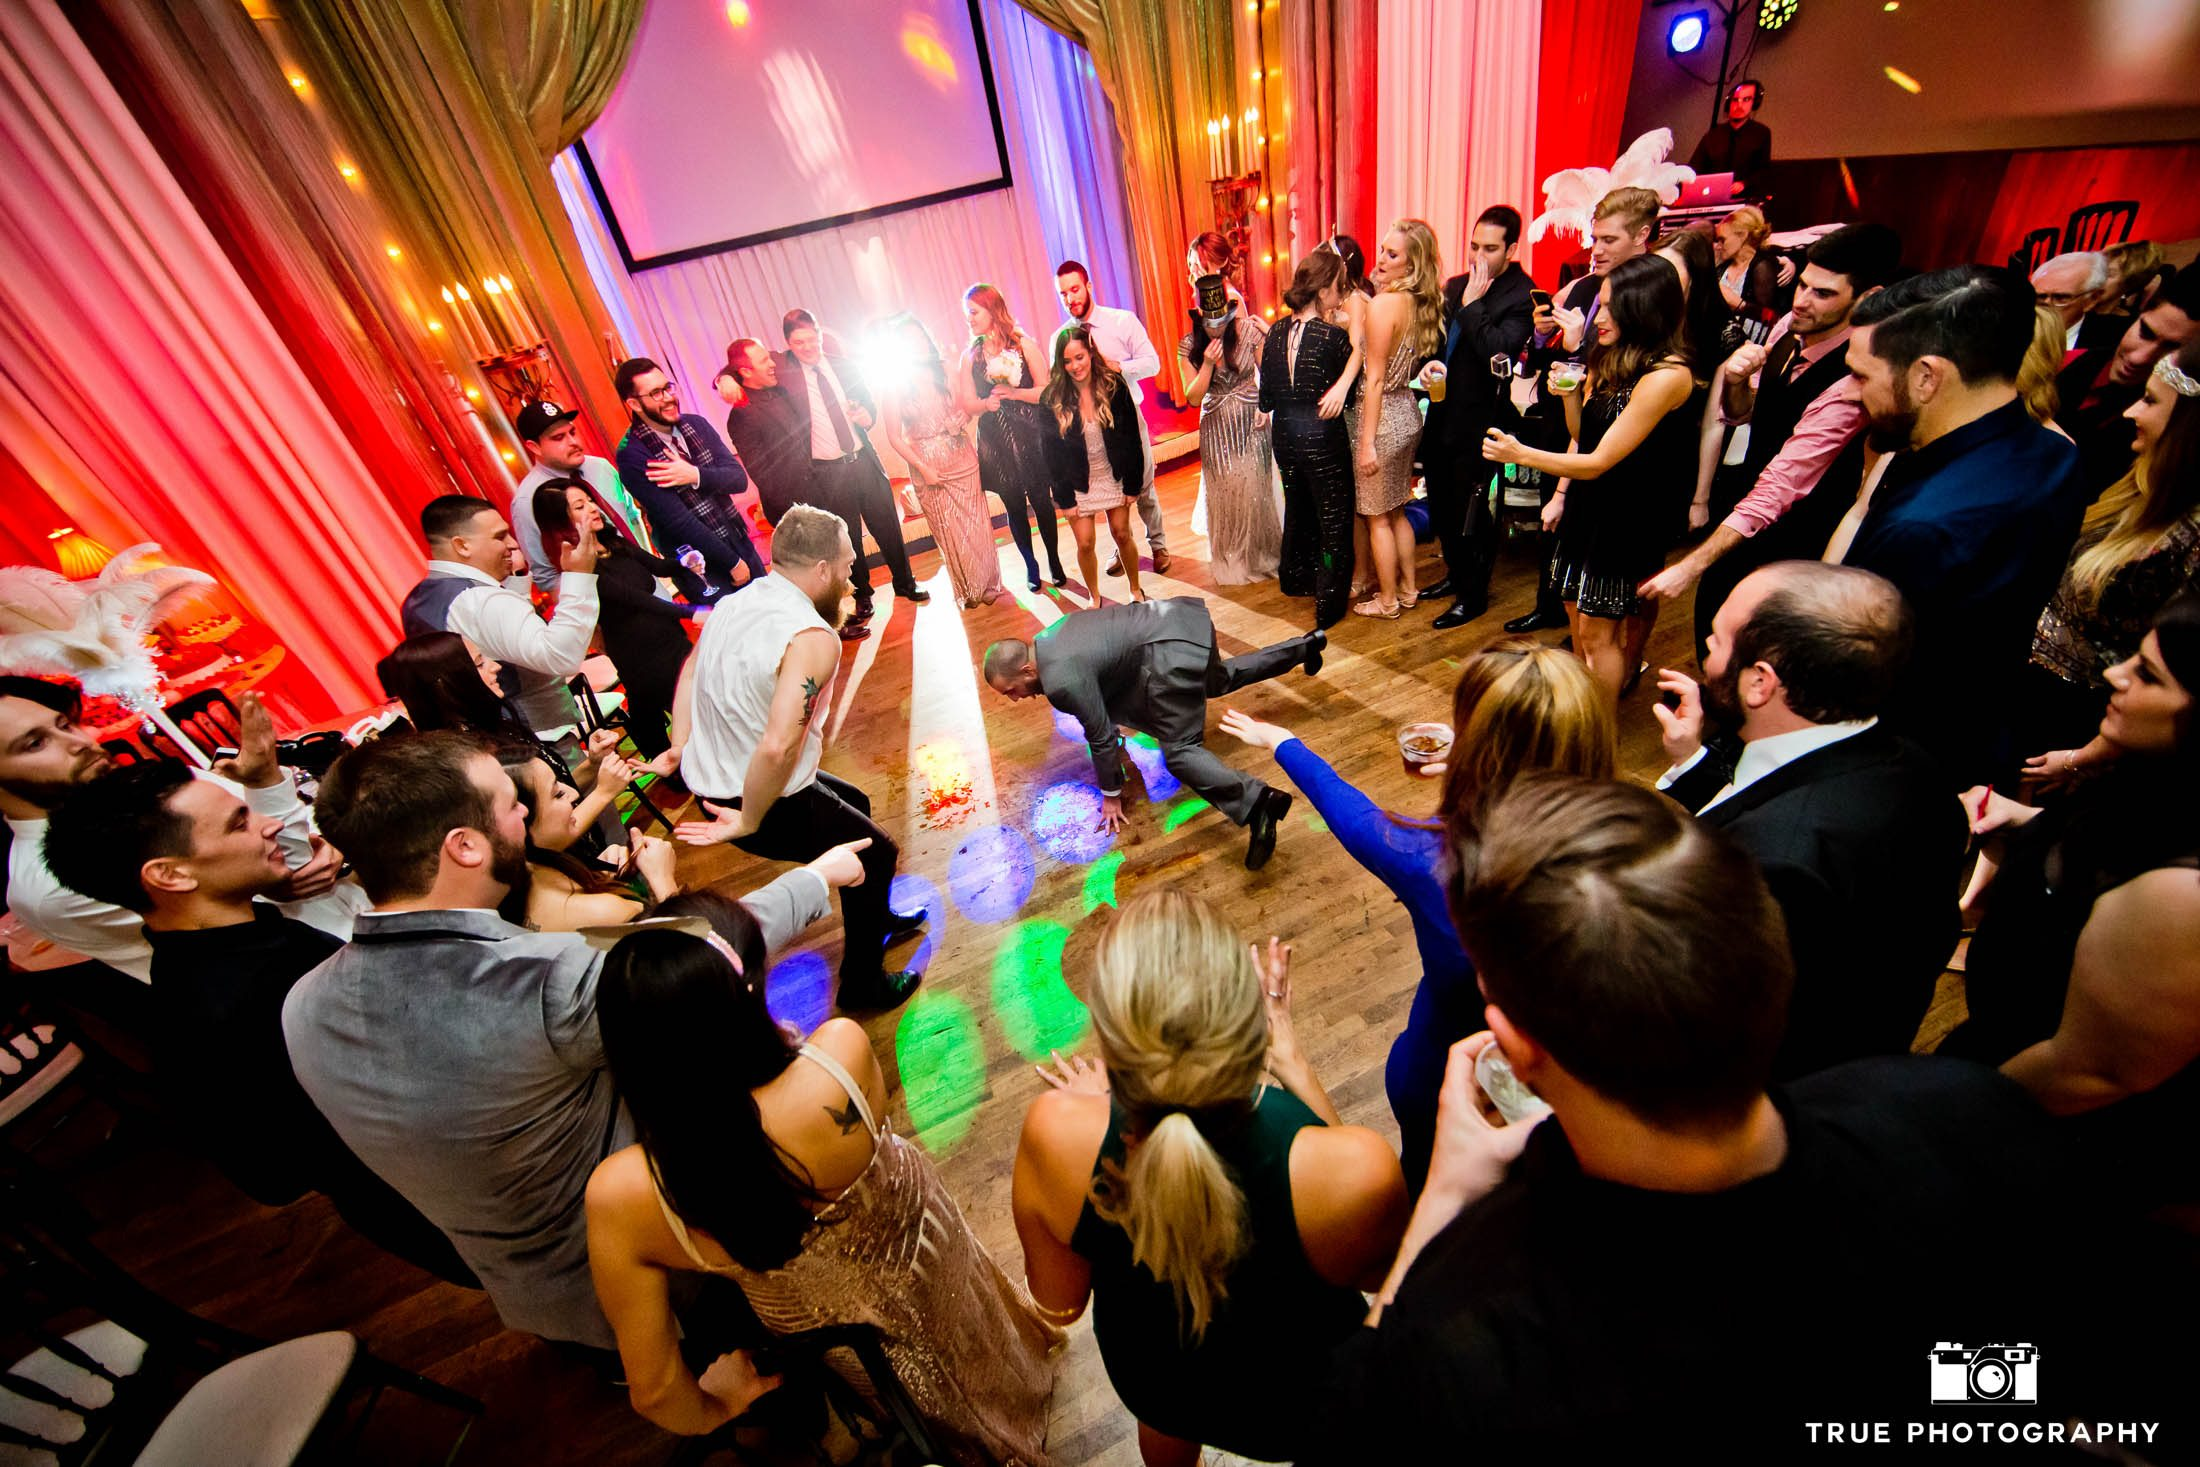 Wedding Guests form dance circle during wedding reception